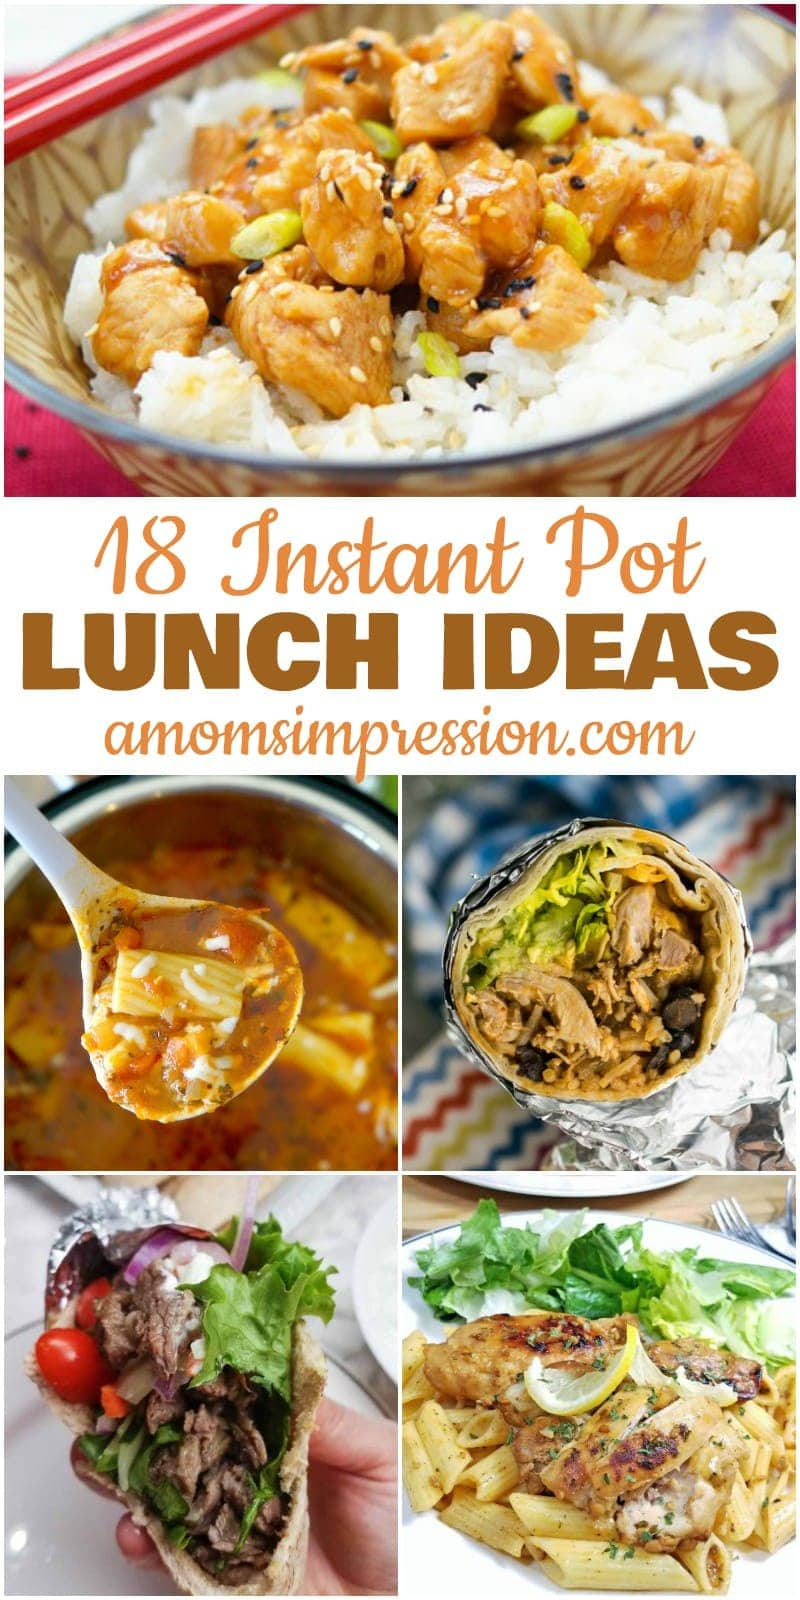 18 Quick And Easy Instant Pot Lunch Ideas For Your Family